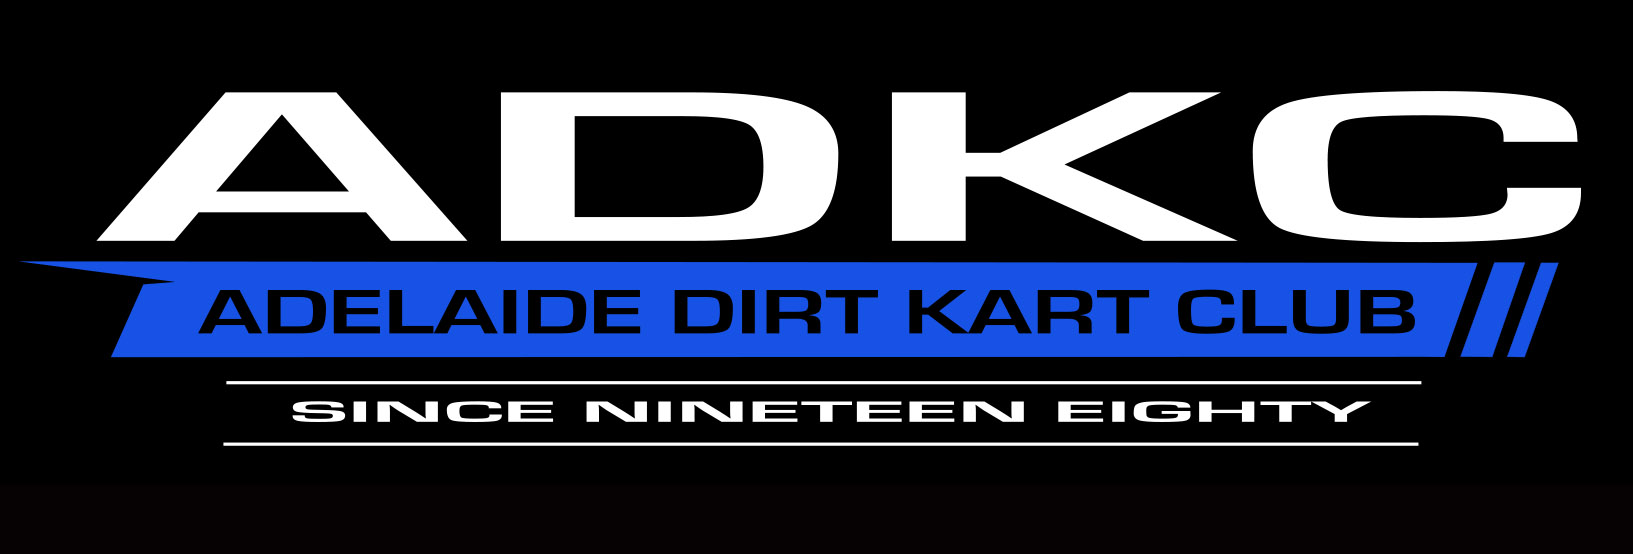 Adelaide Dirt Kart Club